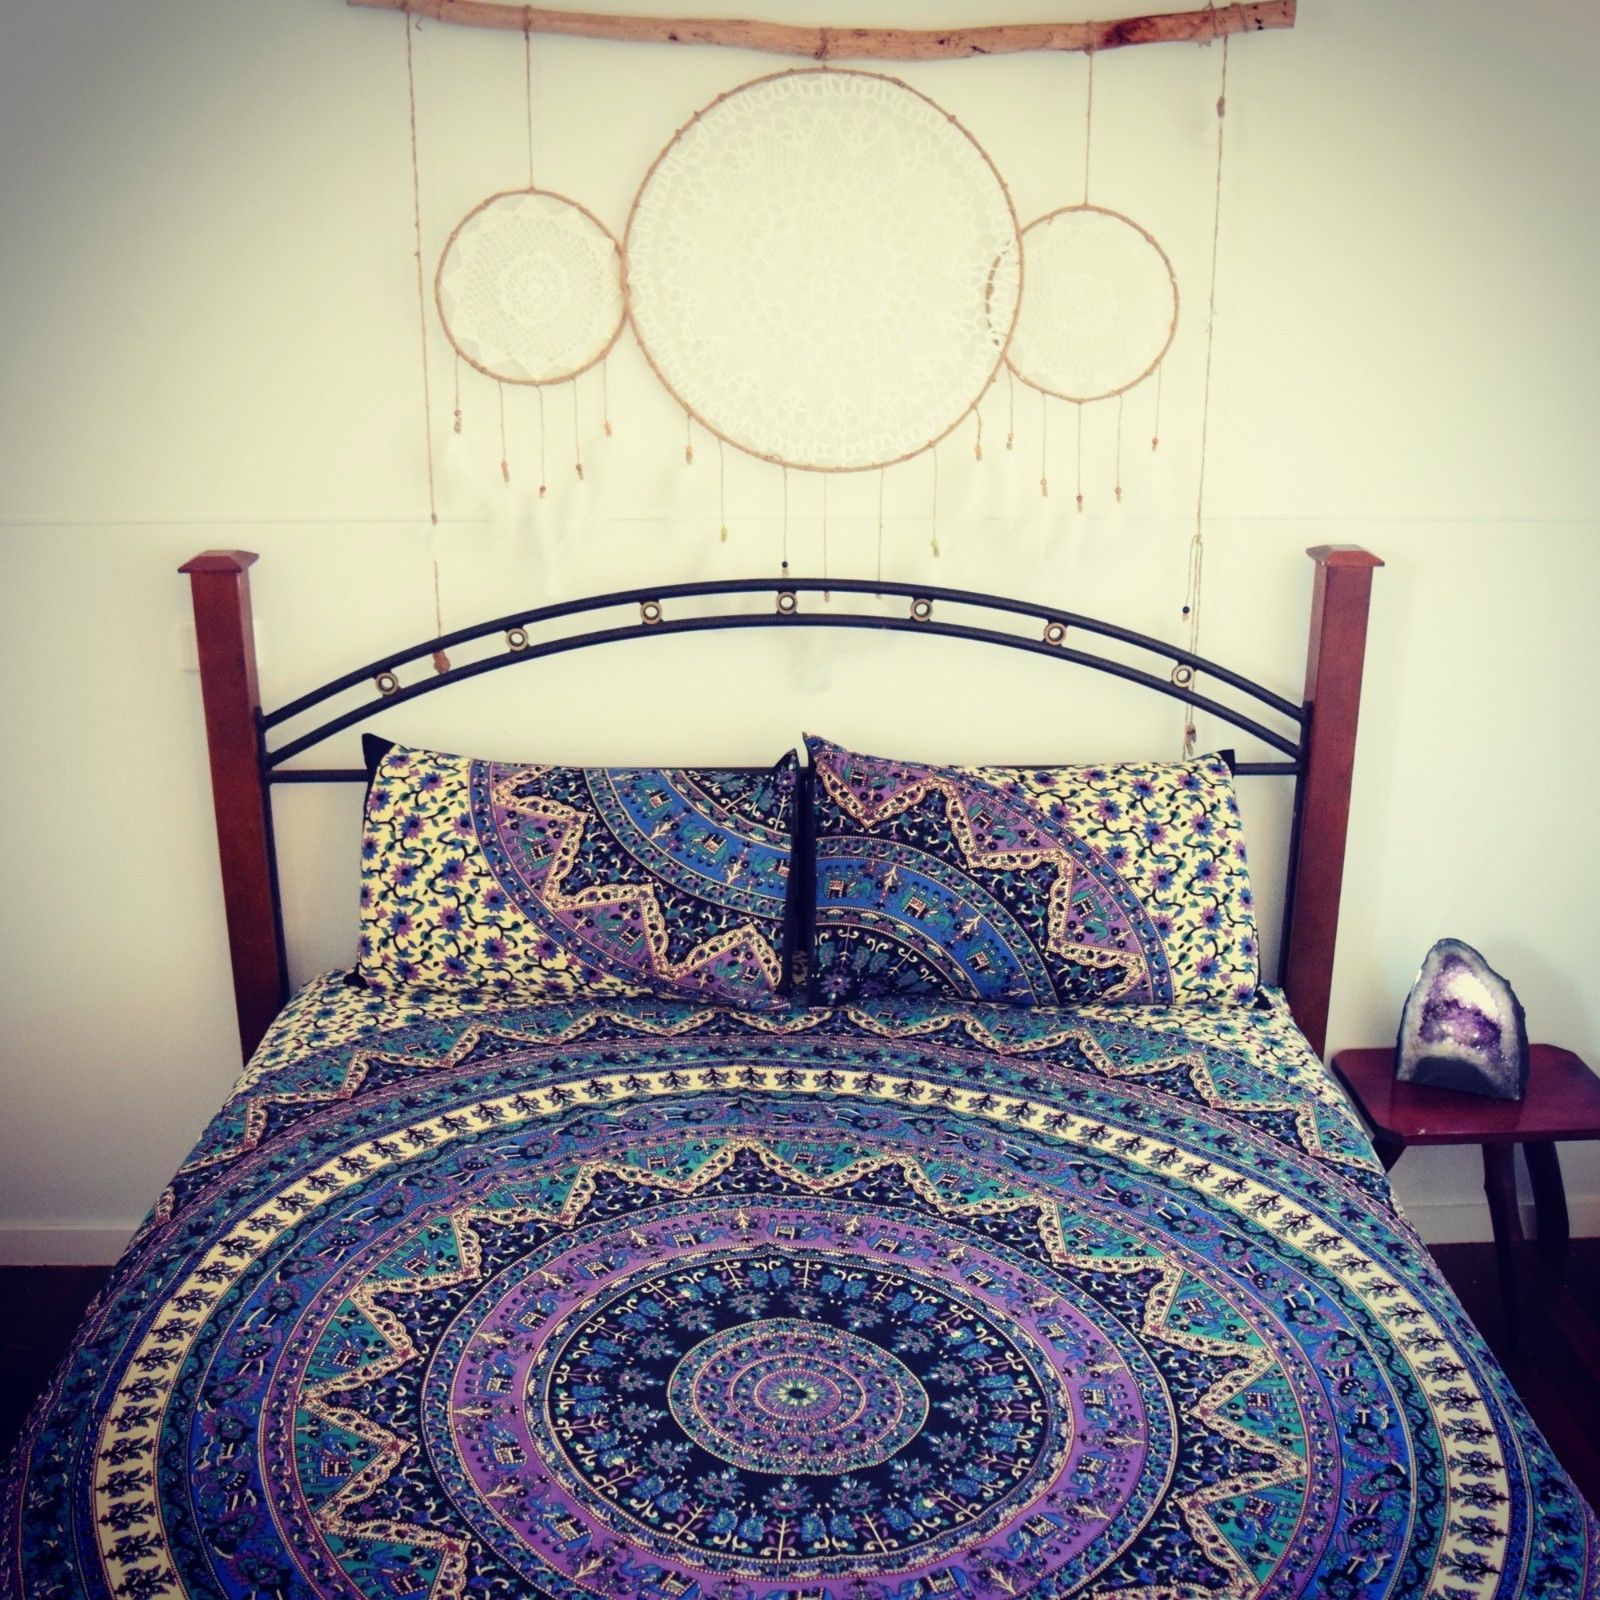 Blue Multi Kerala Boho Medallion Bedding Mandala Duvet